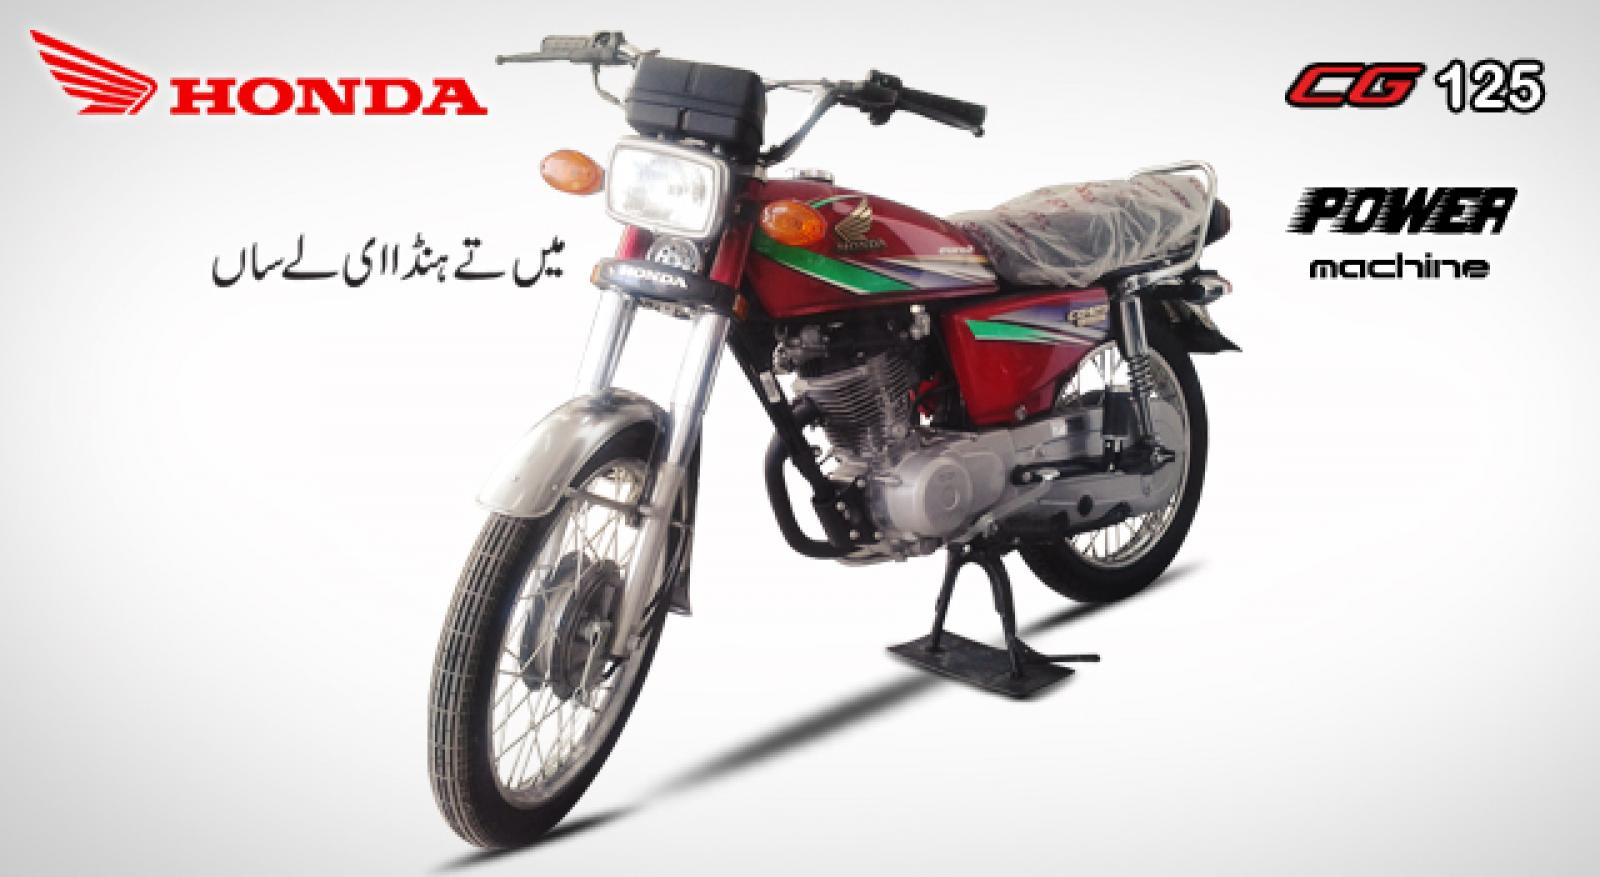 800 1024 1280 1600 origin atlas honda cg 125